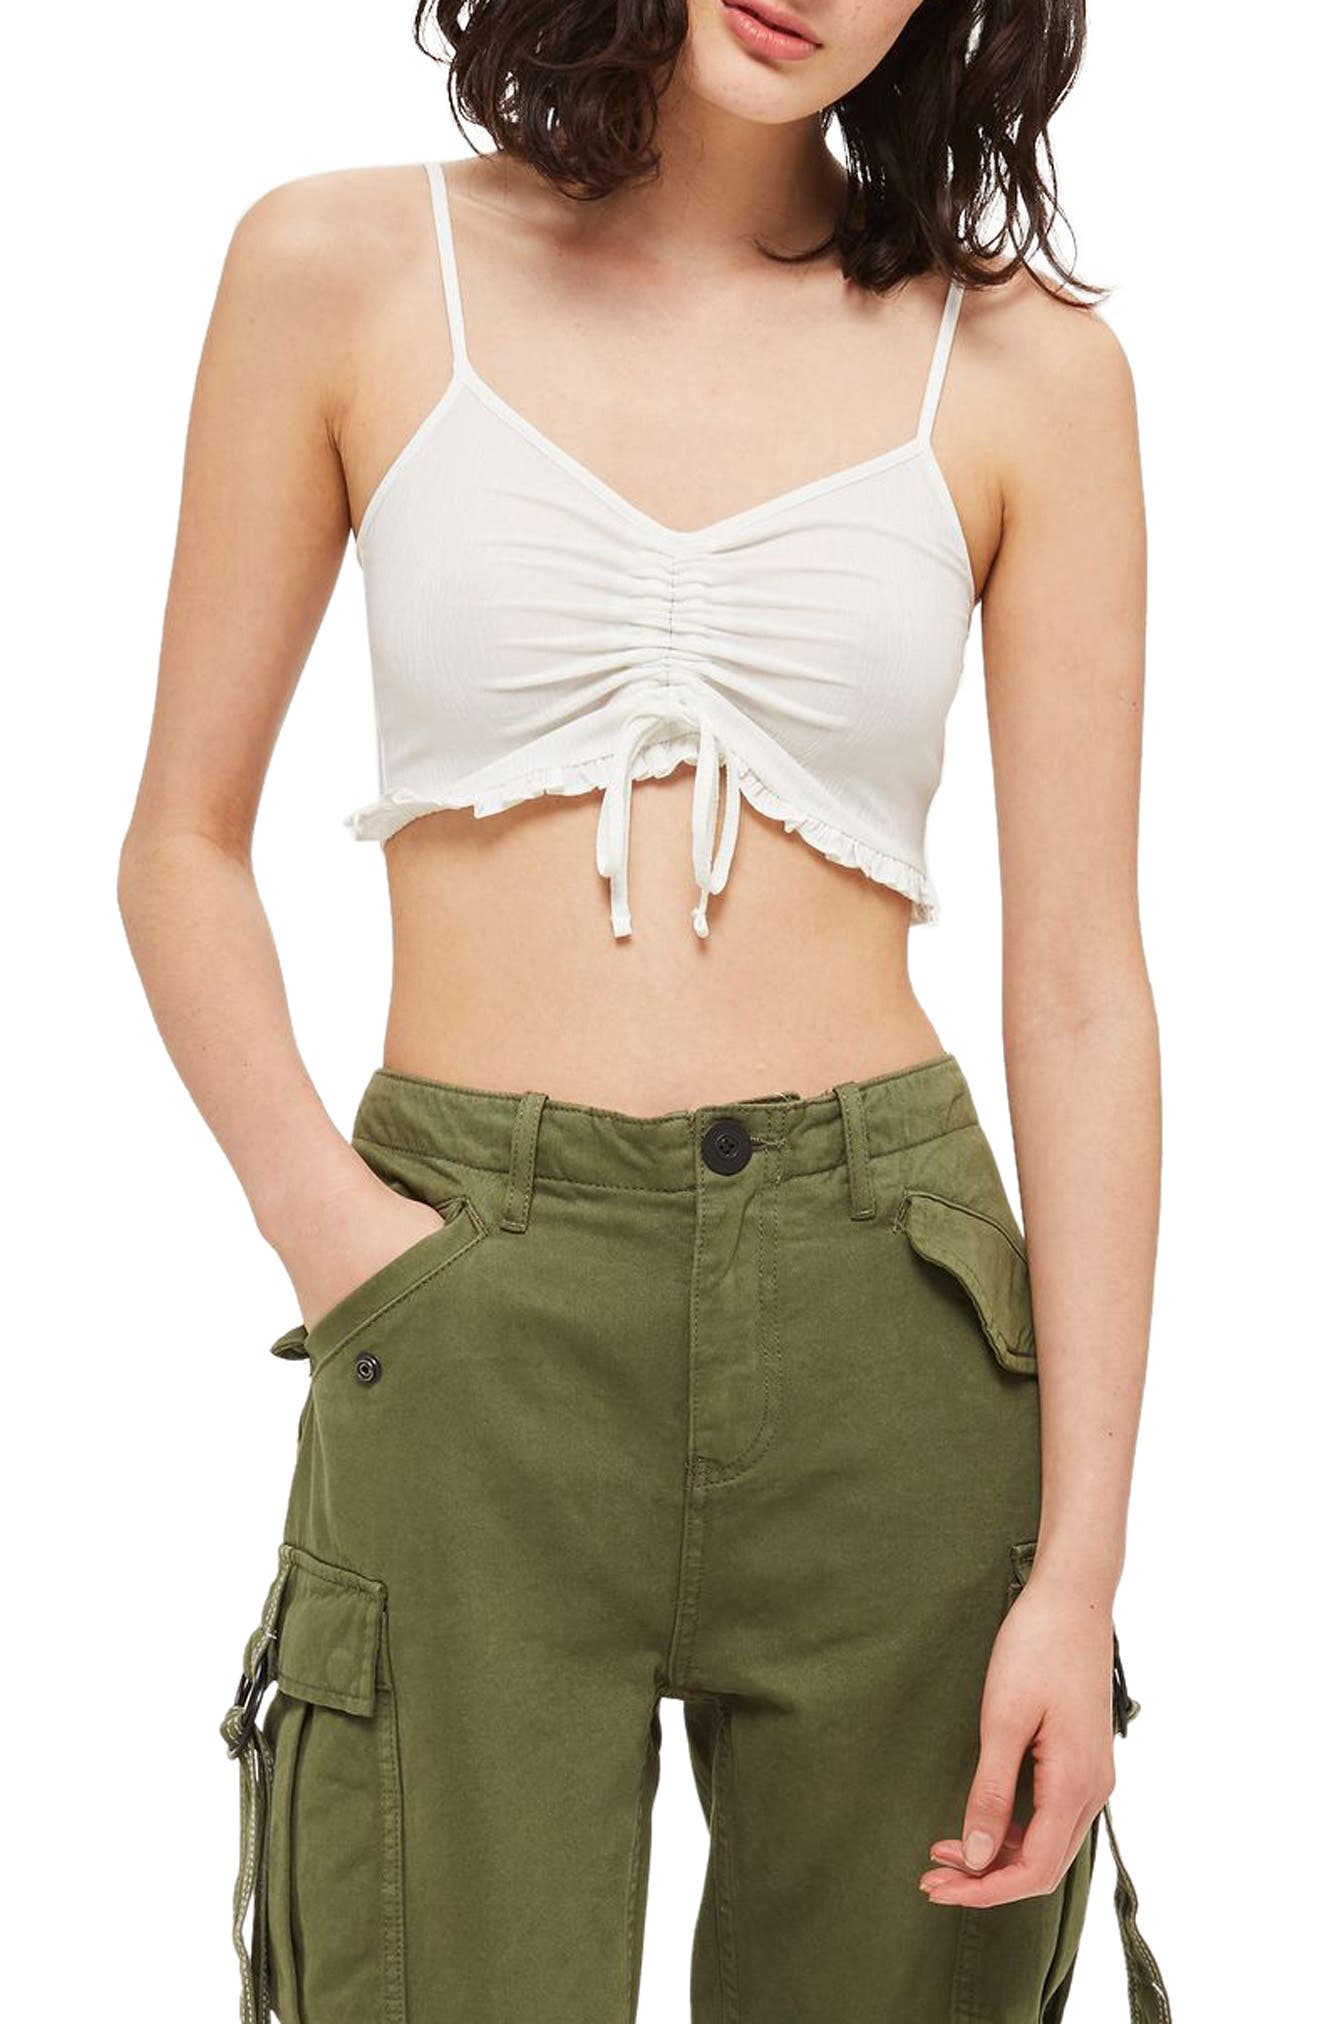 Topshop Ruched Ruffle Bralette